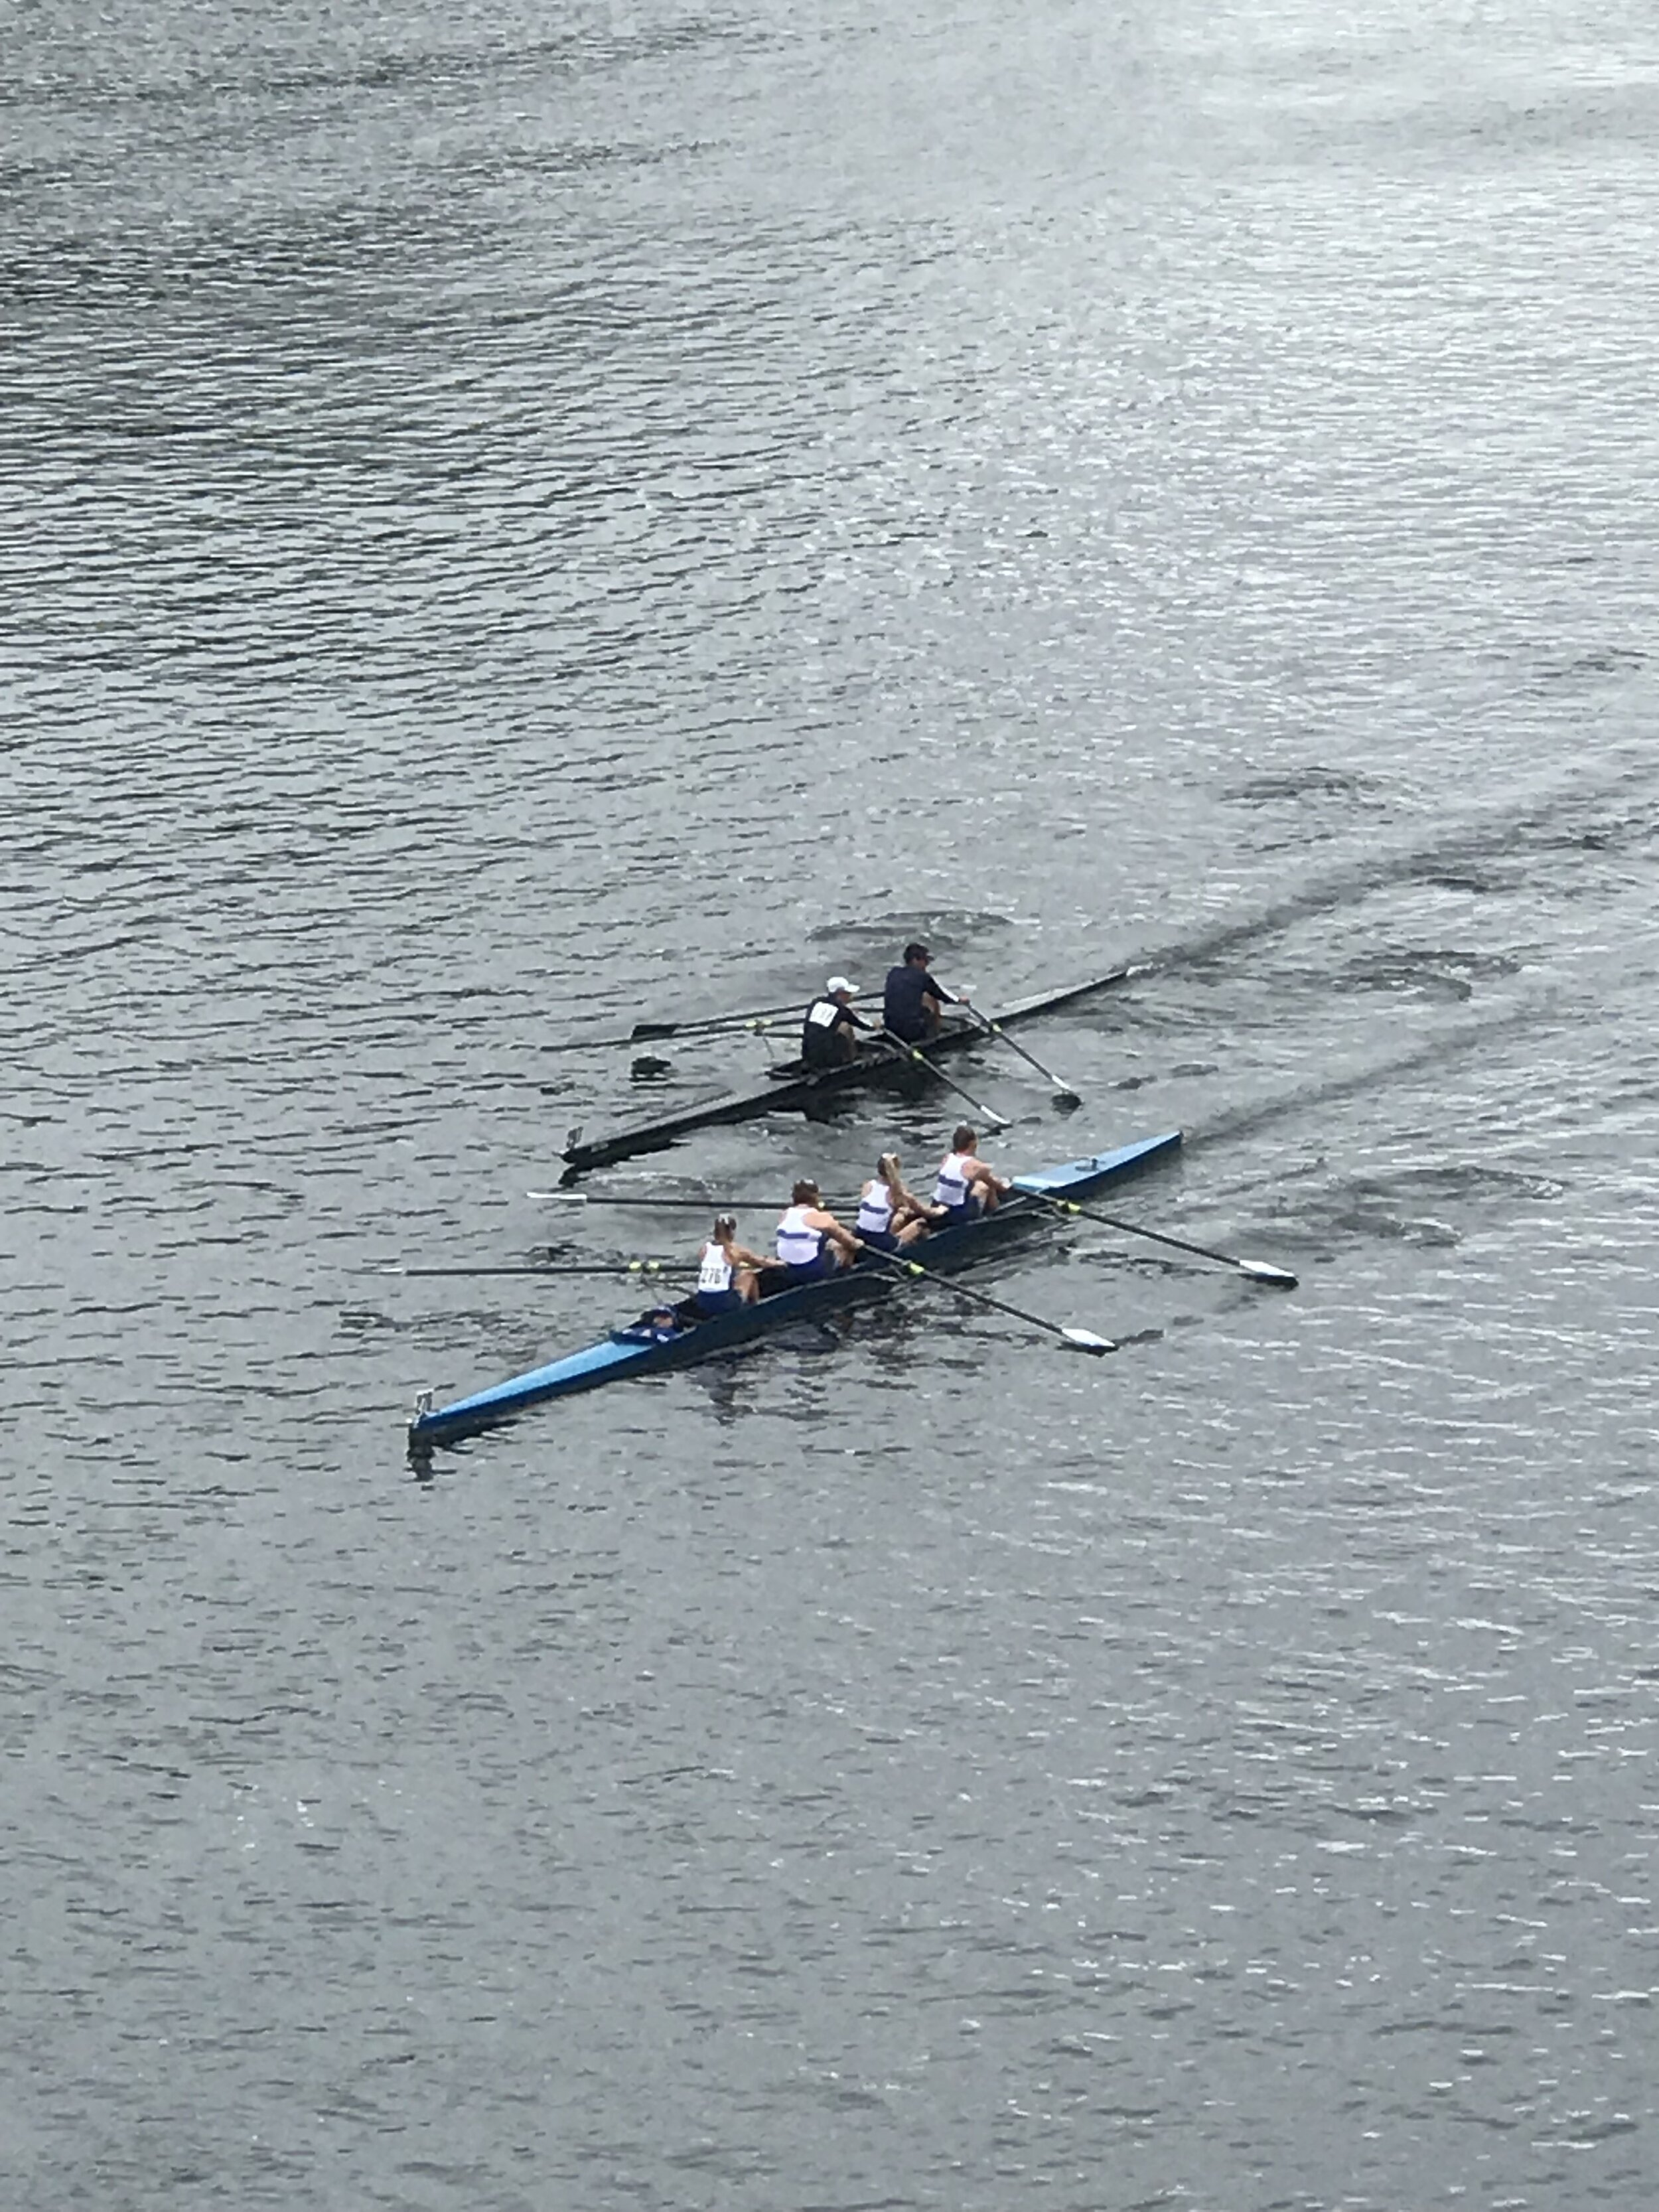 Men's 2x trying to squeeze by a 4+